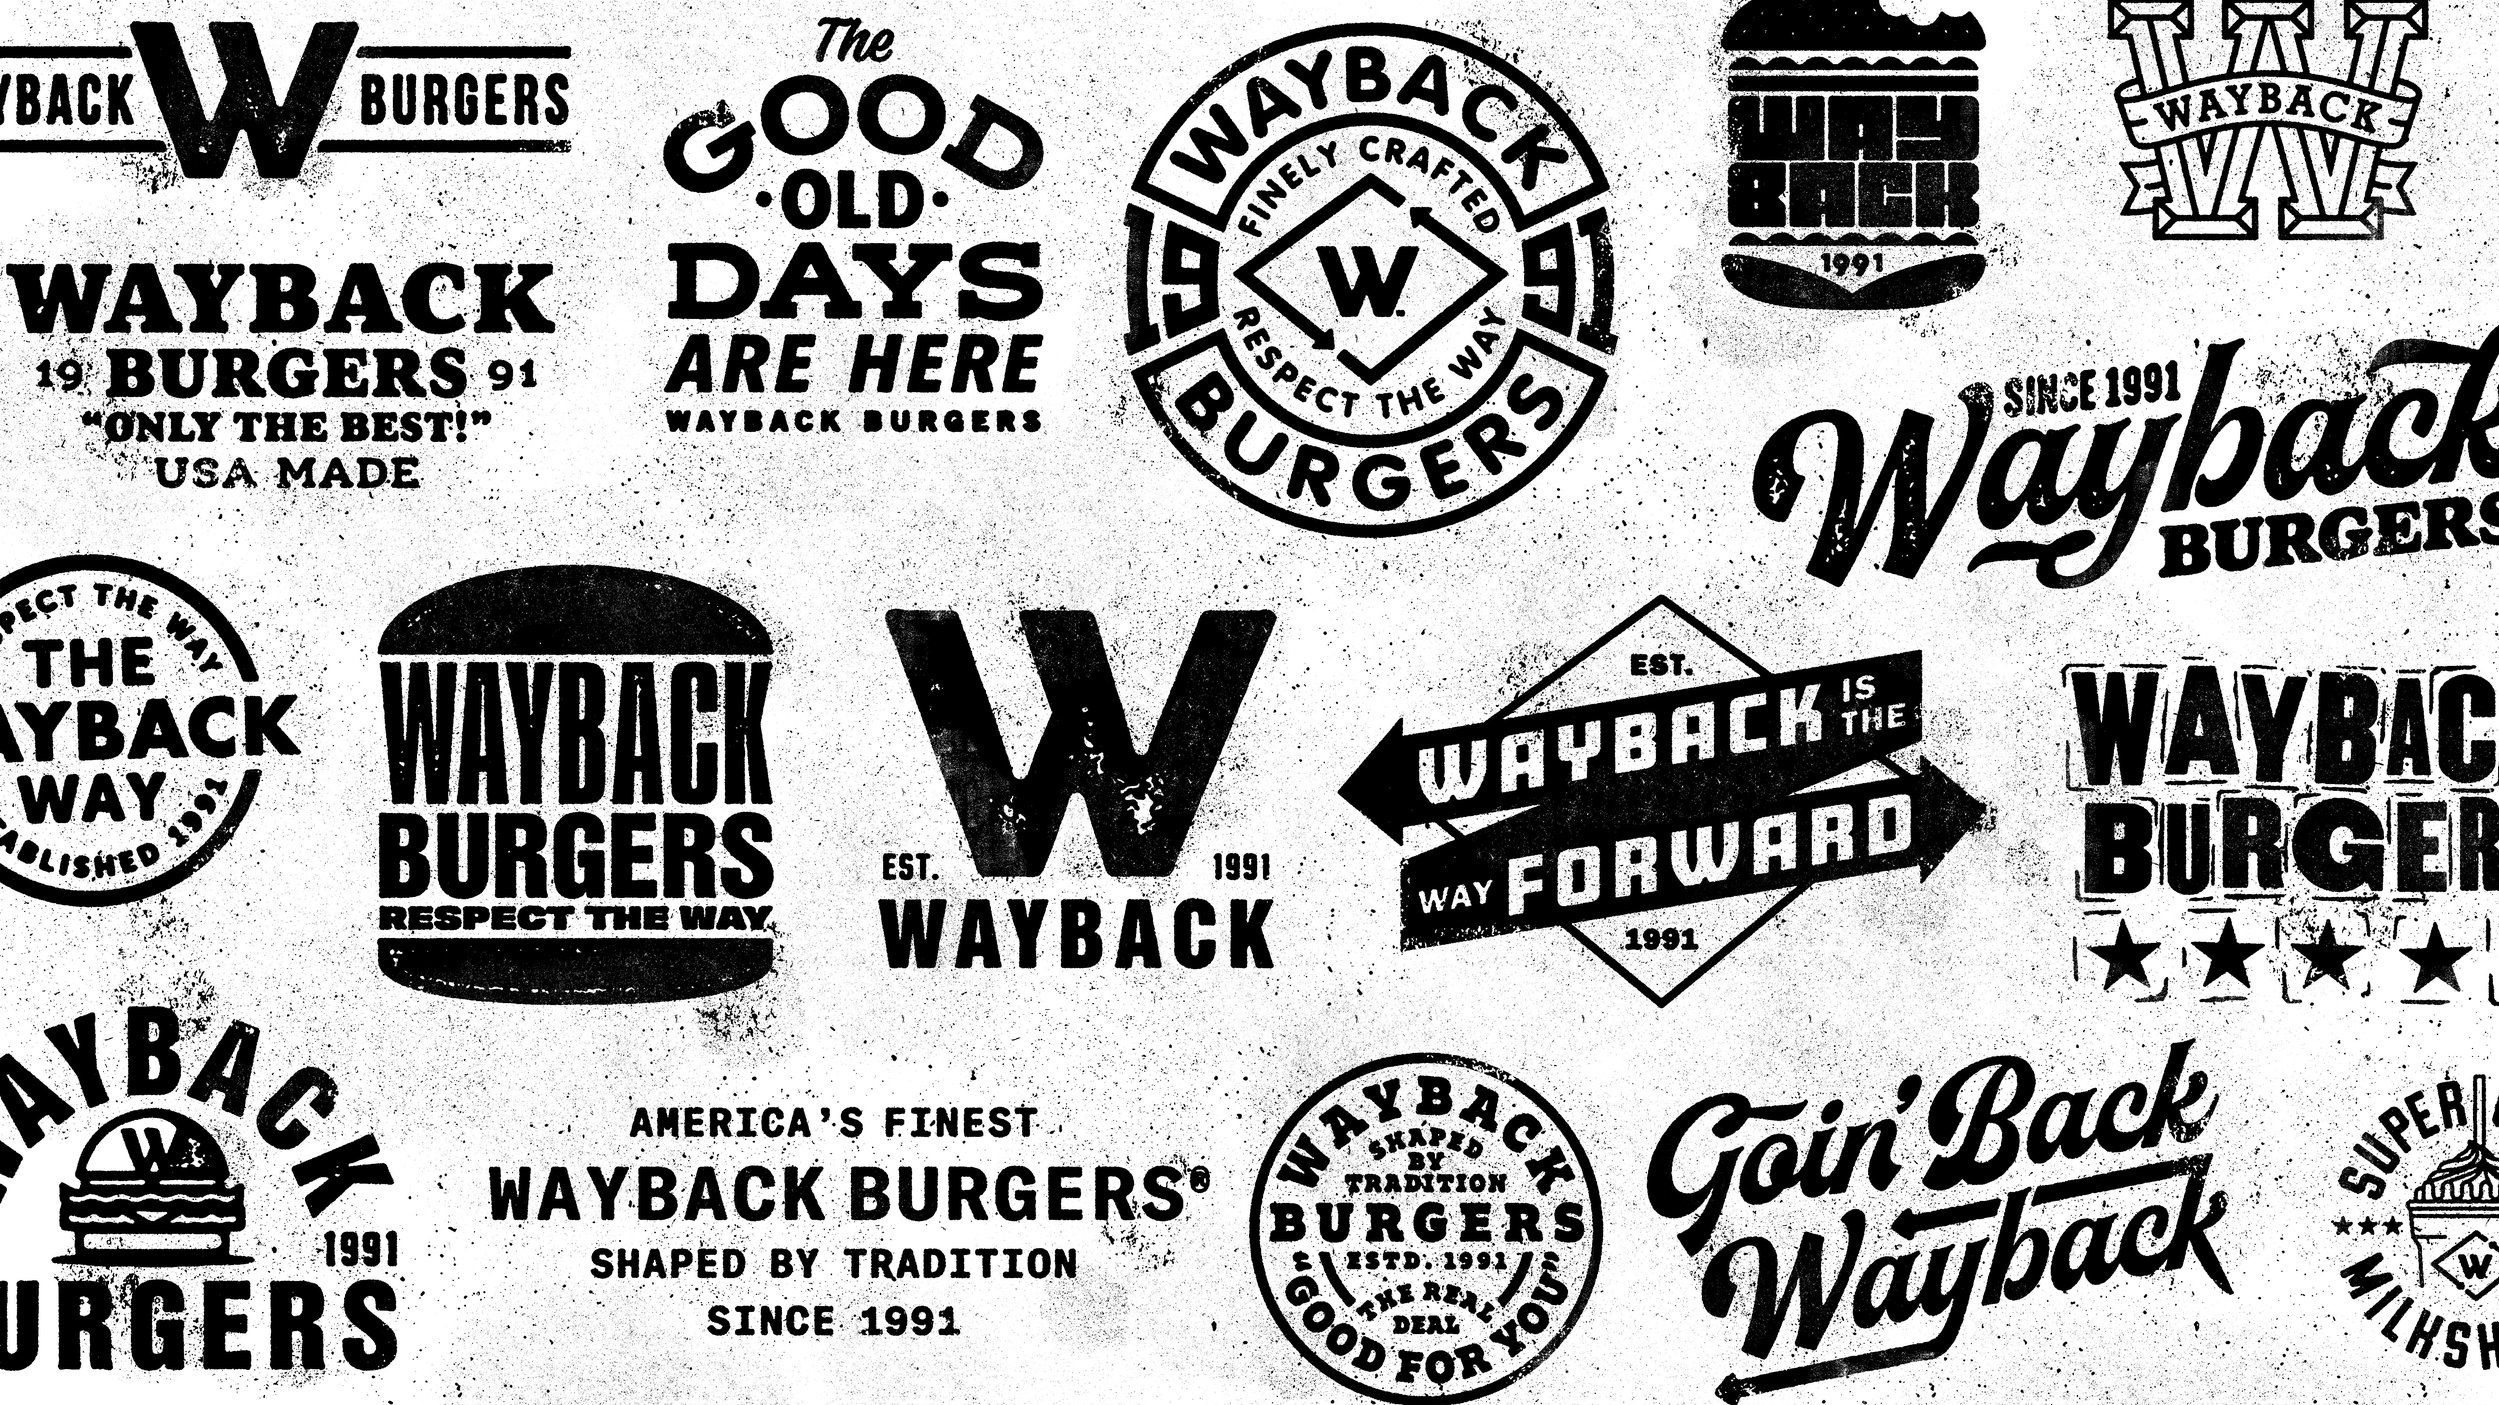 Wayback Burgers - Respect the Way